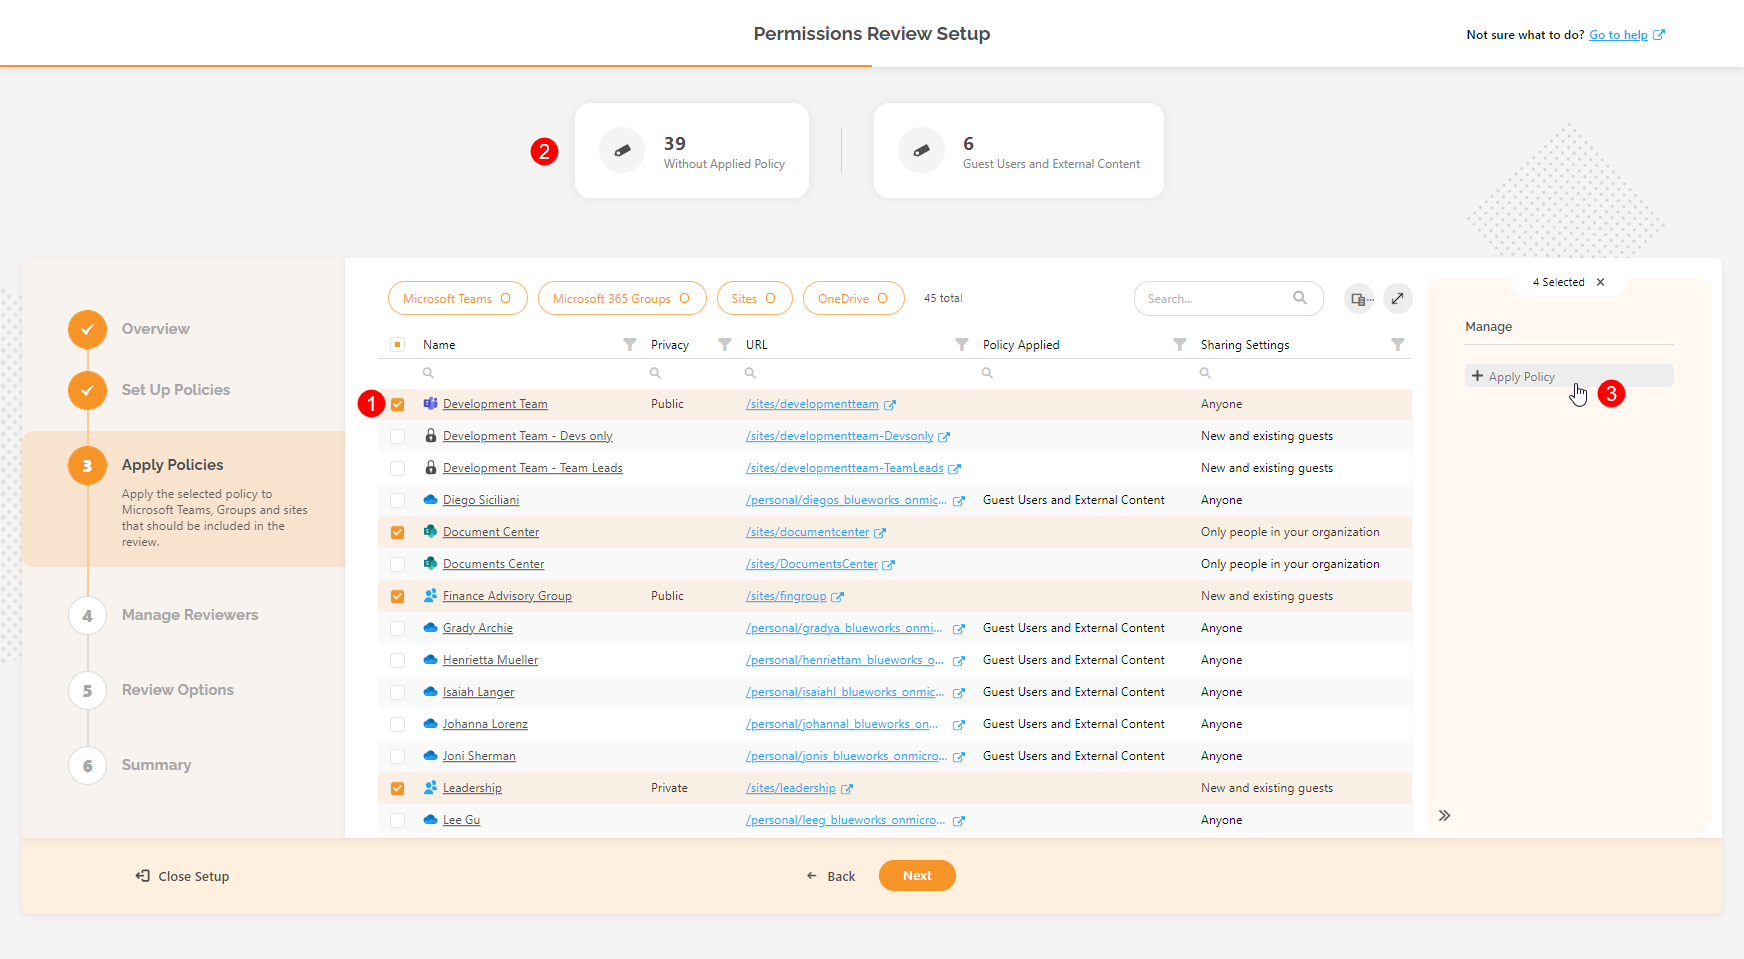 Automated Permissions Review Setup - Apply Policy